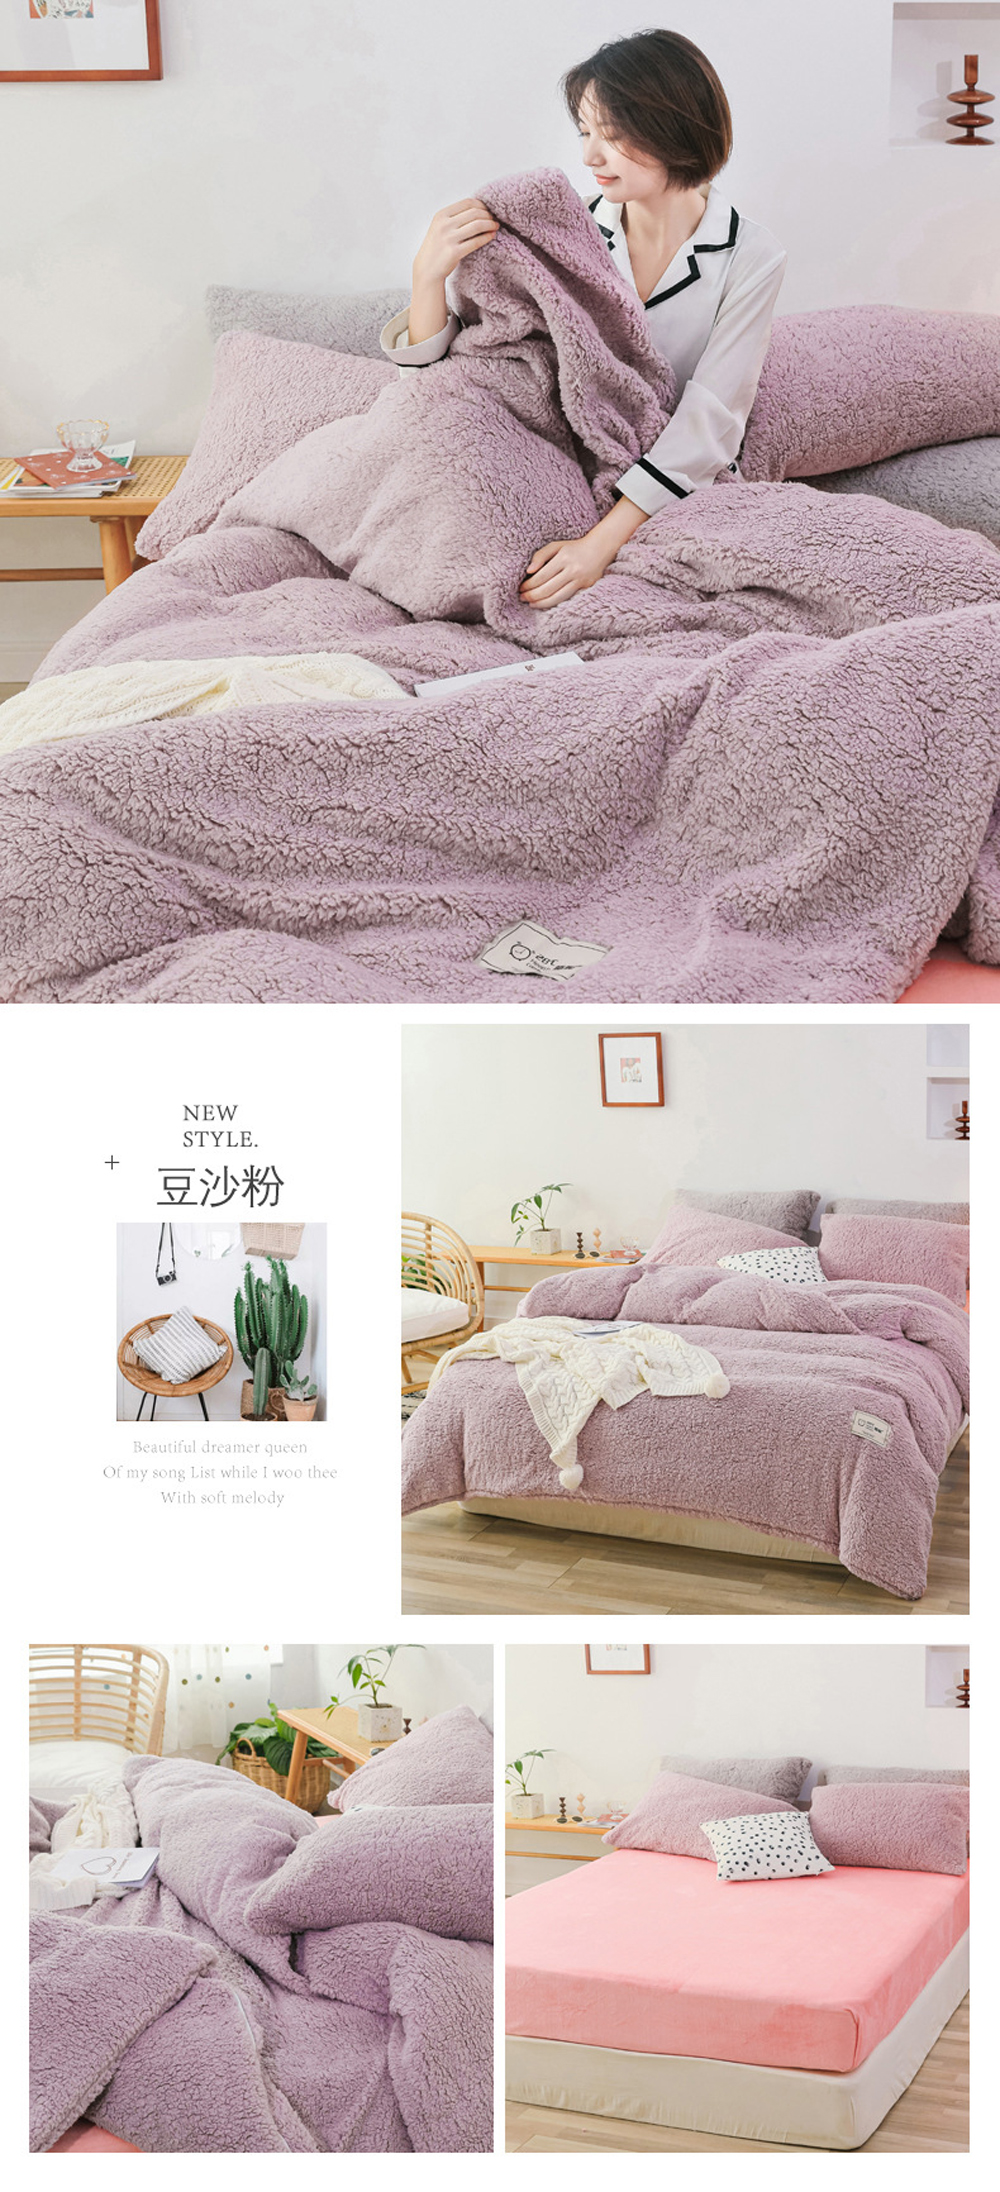 Home Textiles Quilt Cover 1pcs Pillow Case 2pcs Winter bedding set soft warm lamb cashmere duvet cover solid fleece bed cover